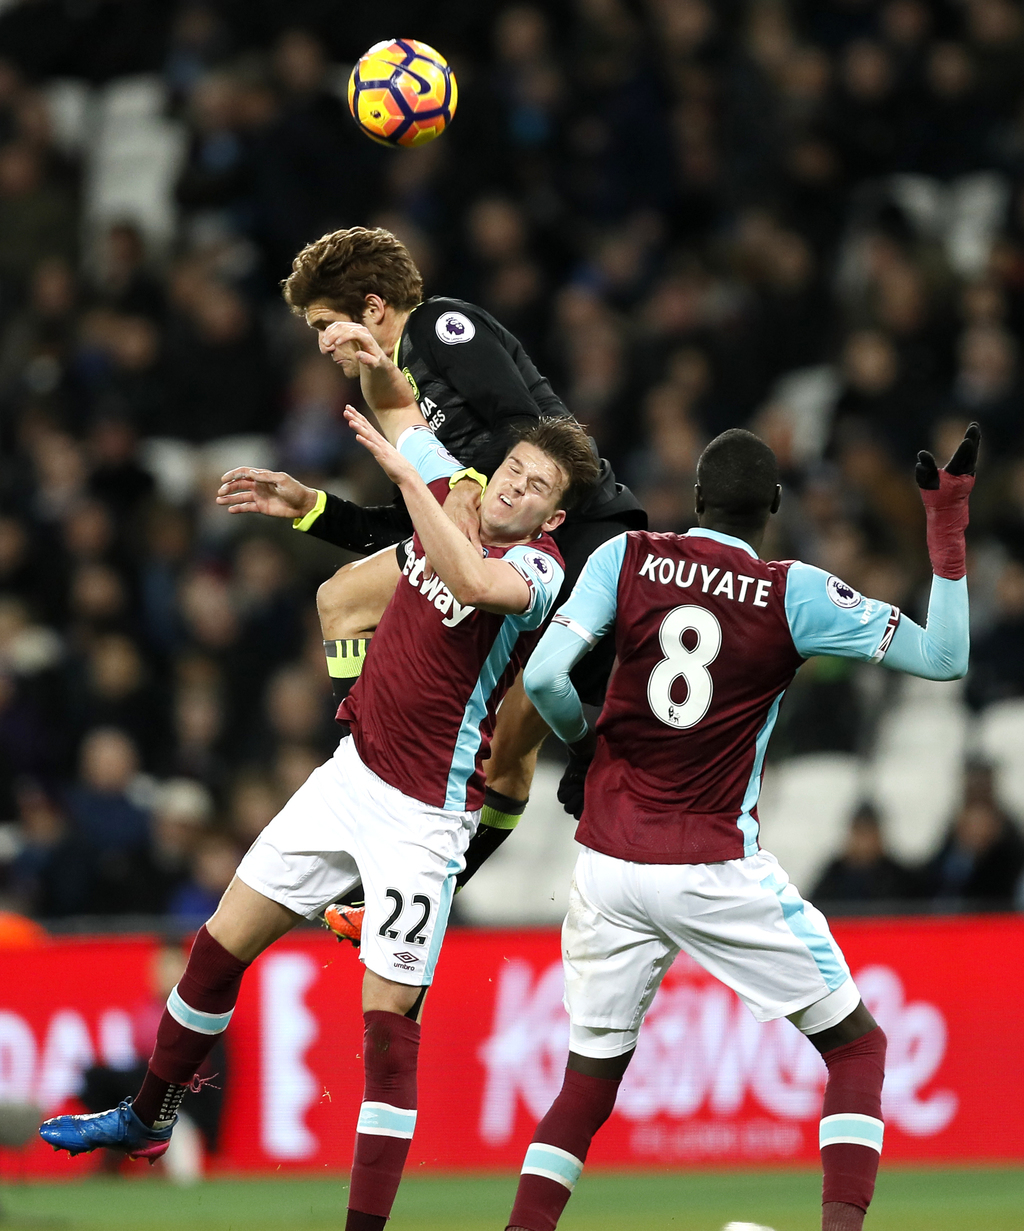 Chelsea's Marcos Alonso leaps above West Ham's Sam Byram and West Ham's Cheikhou Kouyate, right, to head the ball during the English Pr...